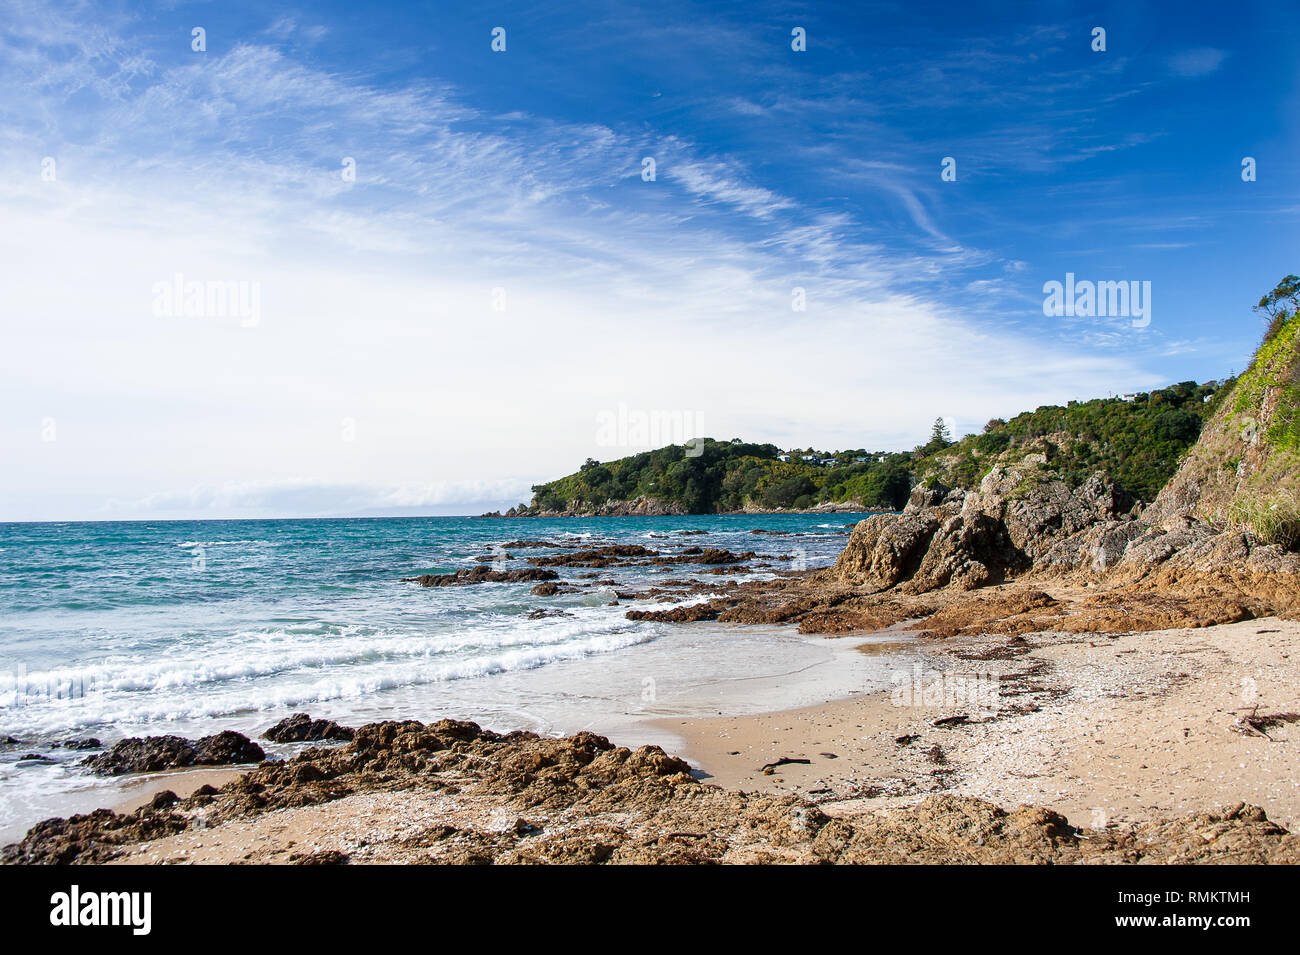 Waiheke Island, New Zealand. Picturesque bay on rugged coastline with rocky foreground and blue cloudy sky - Stock Image